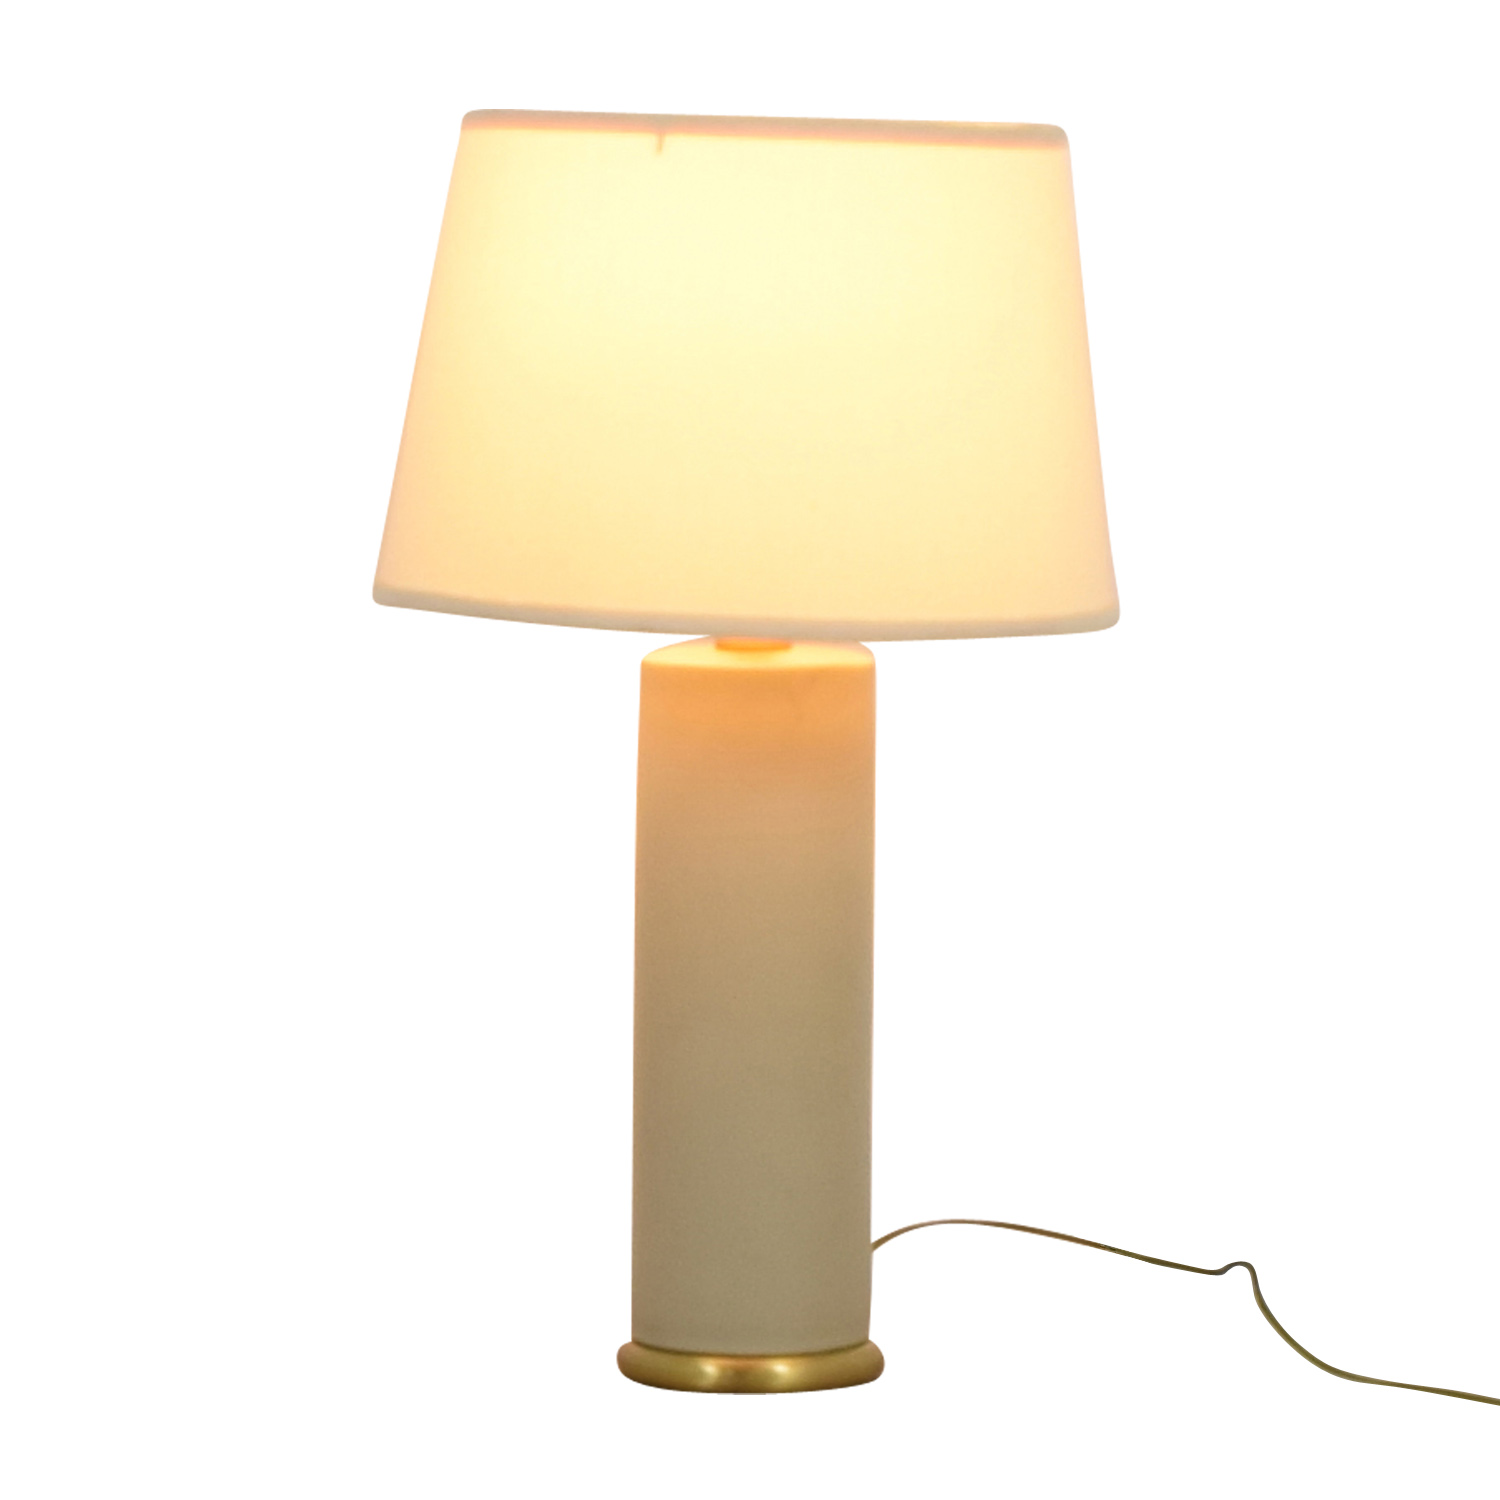 Crate & Barrel Crate & Barrel White and Gold Table Lamp second hand